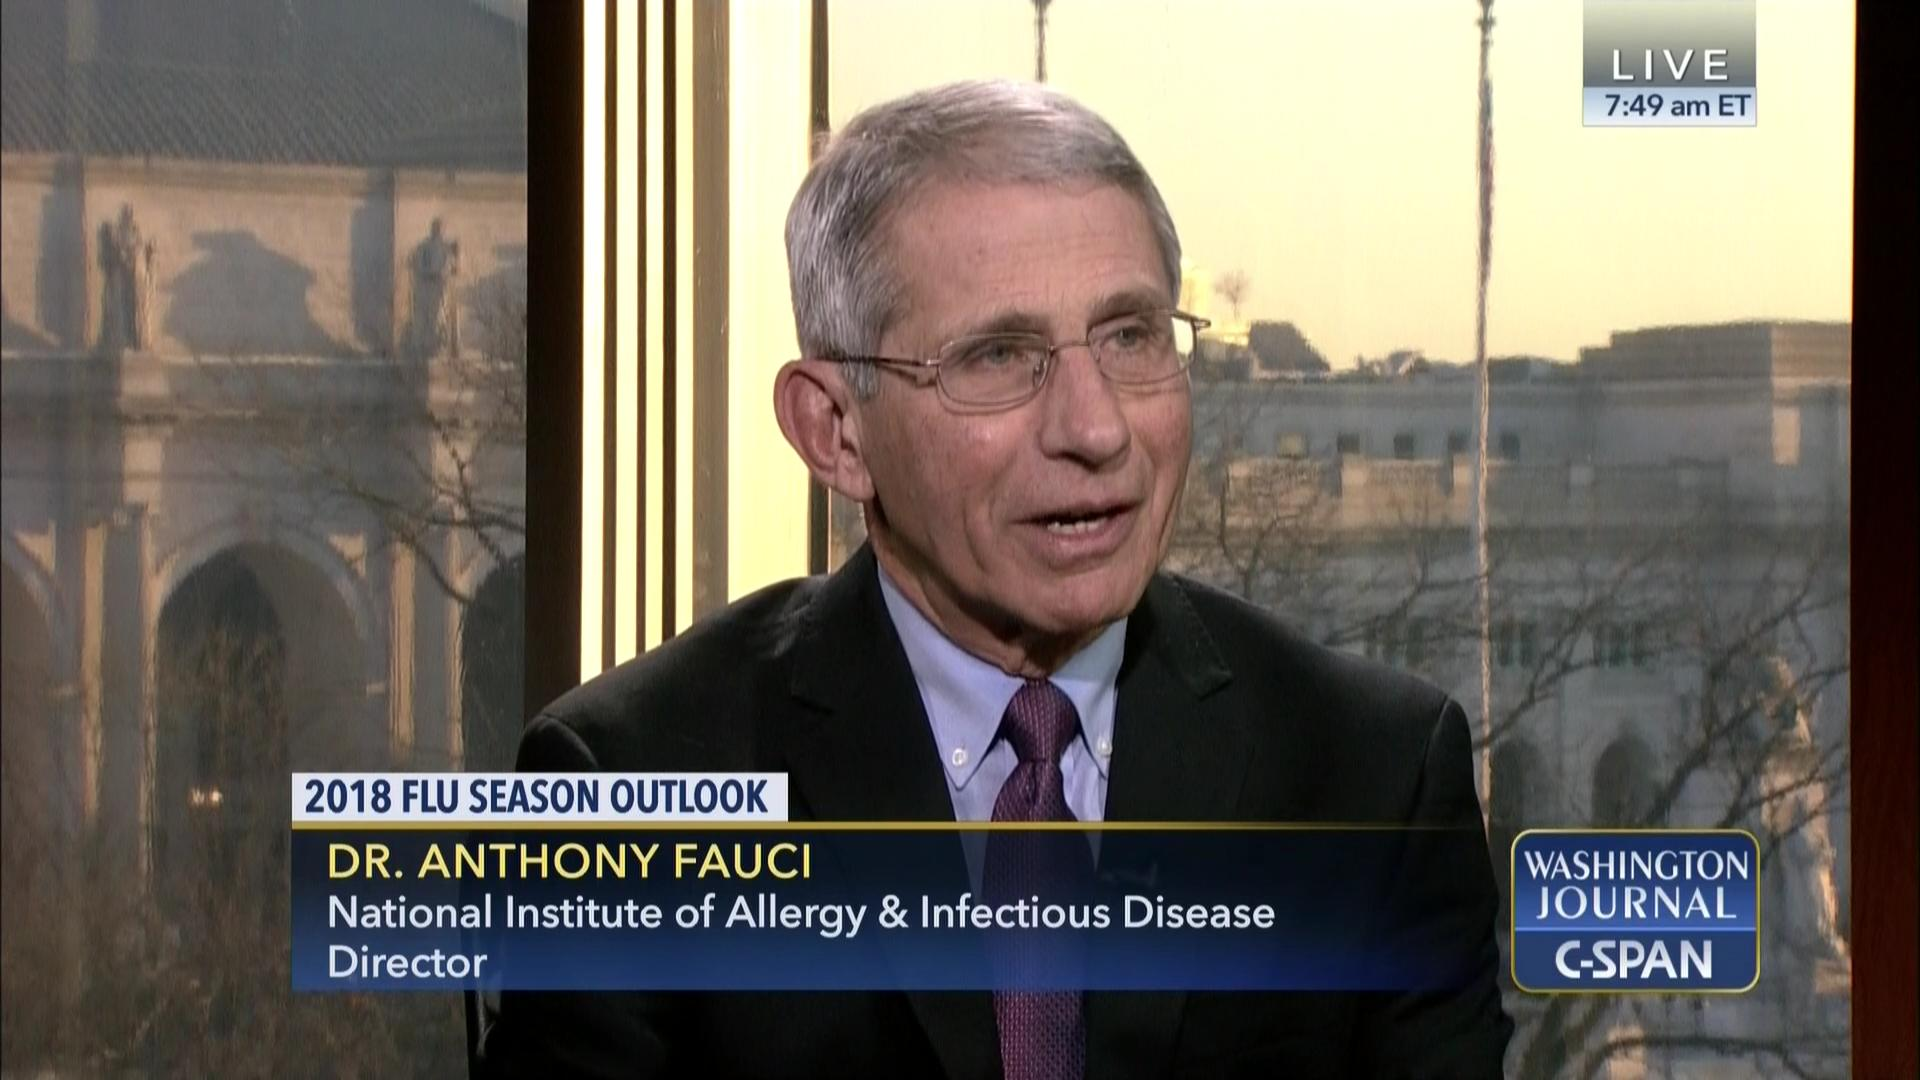 Dr. Anthony Fauci on the 2018 Flu Season  61e5504d2